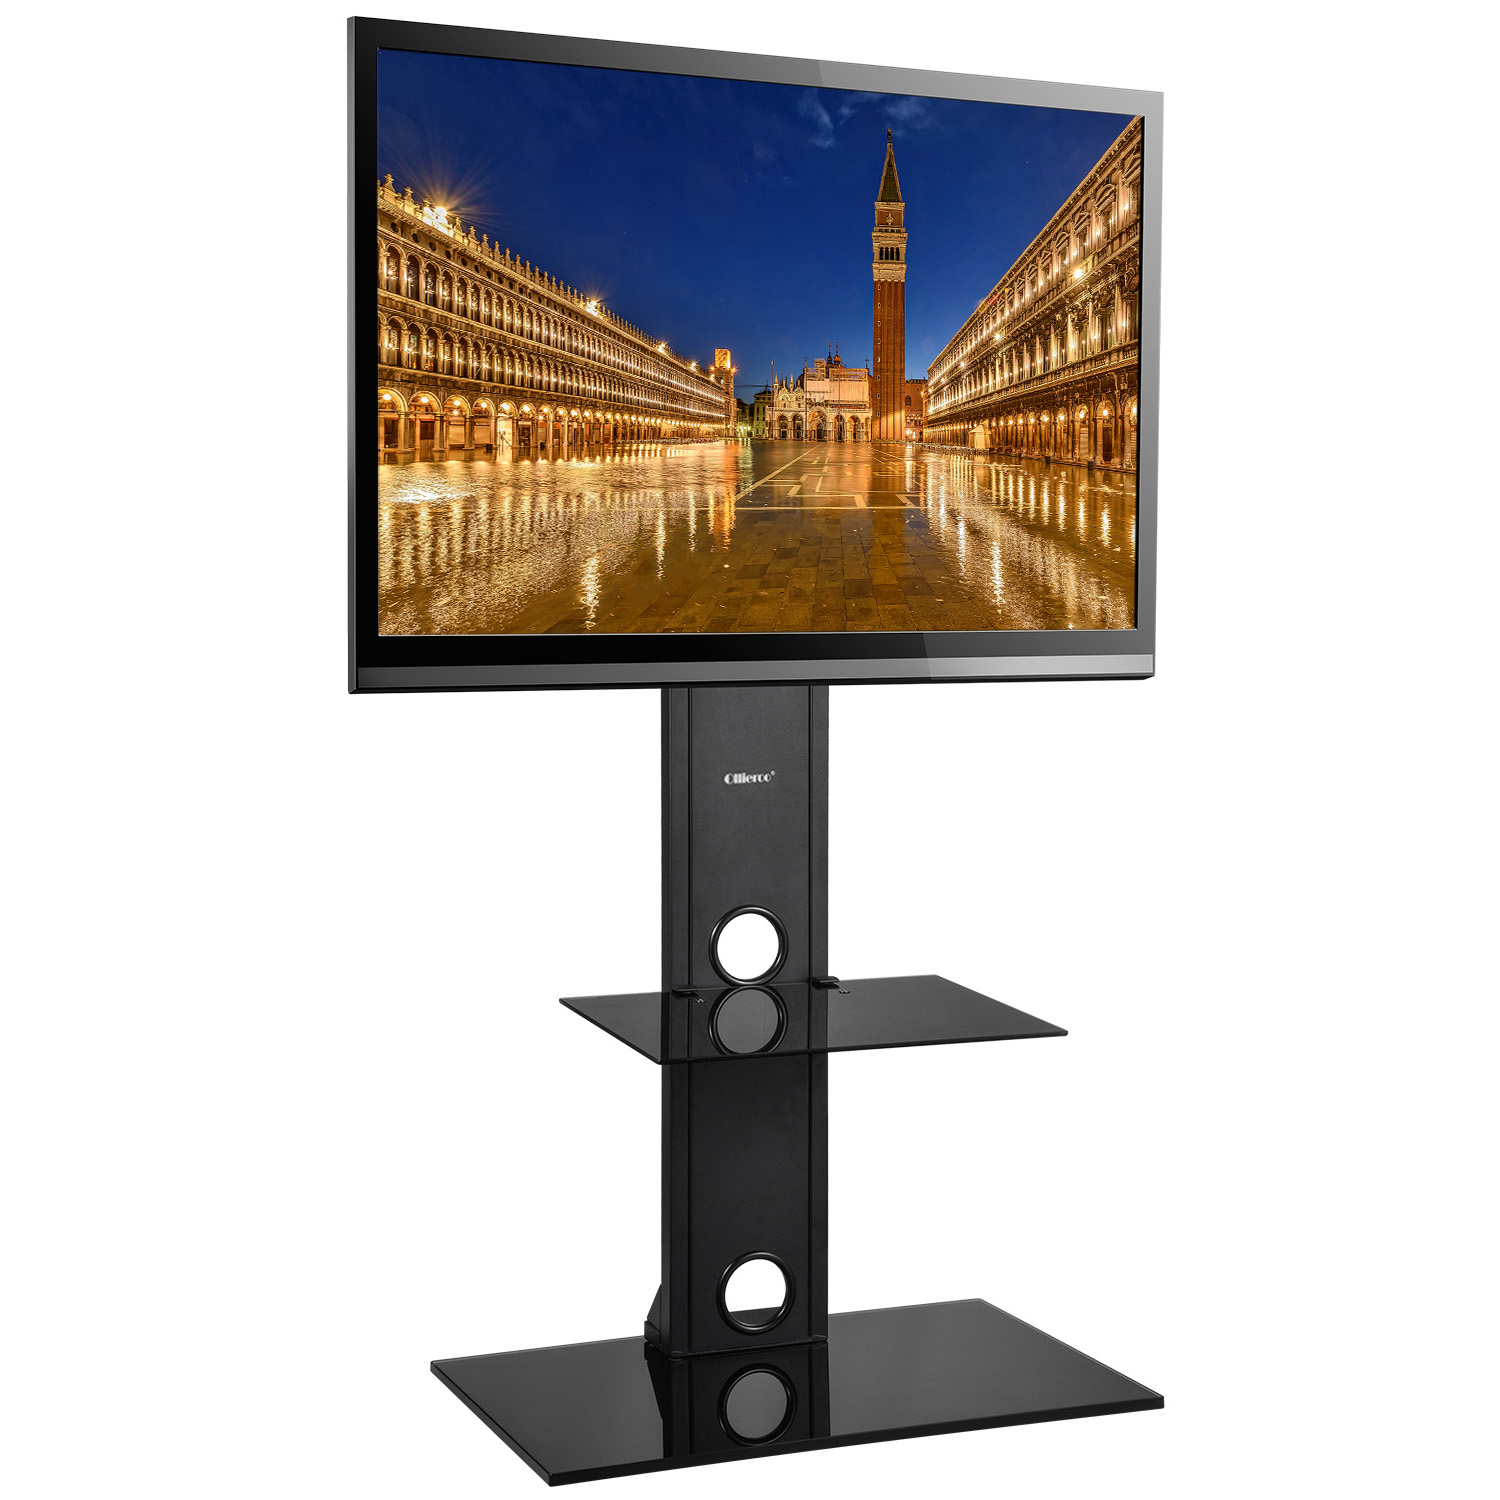 Mllieroo Universal Swivel Bracket Glass Floor TV Stand with Mount and Two Shelves for 26 to 65 inch Plasma LCD TV Up to 110lb Max VASE600x400mm